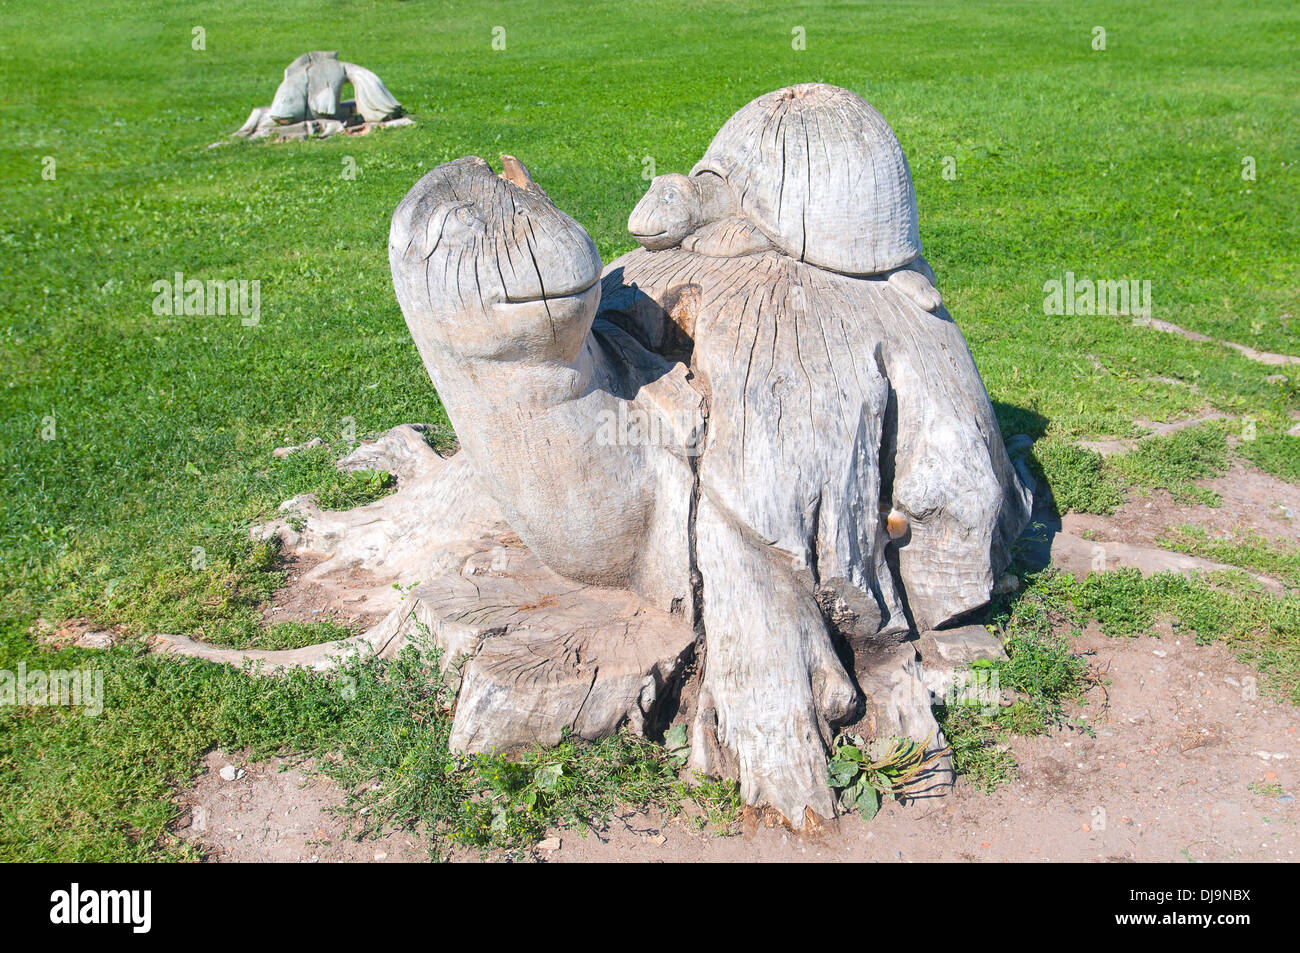 Veliky Novgorod. Turtle mother with a child on the stump of a tree. Carving - Stock Image